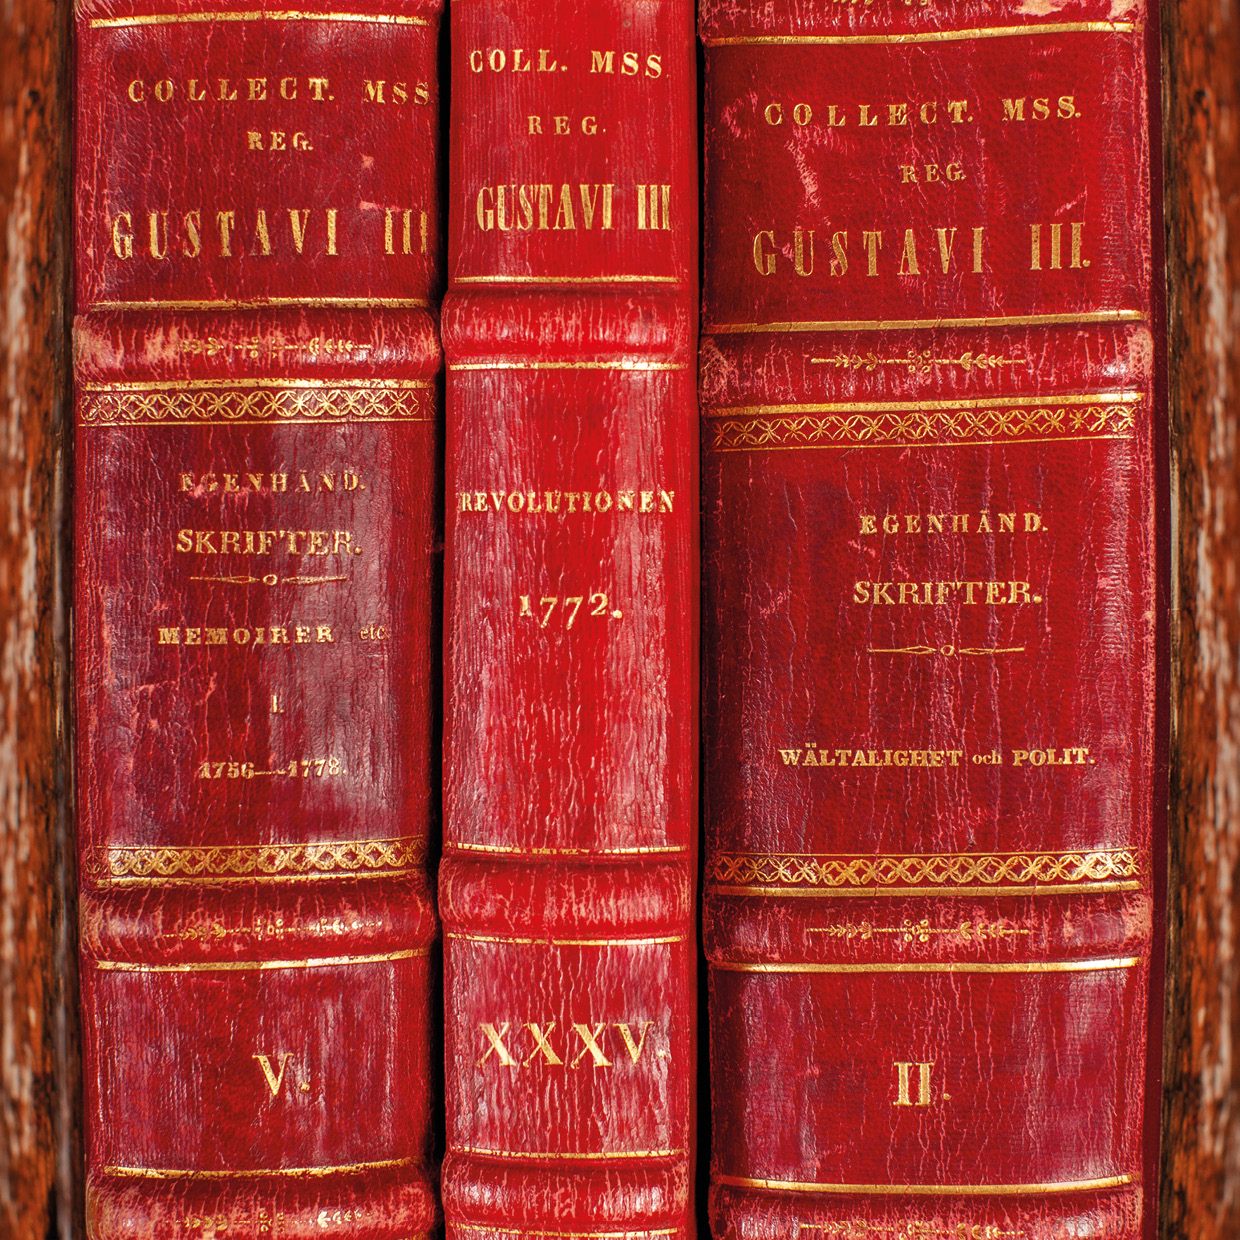 Red bookspines from the Gustavian collection